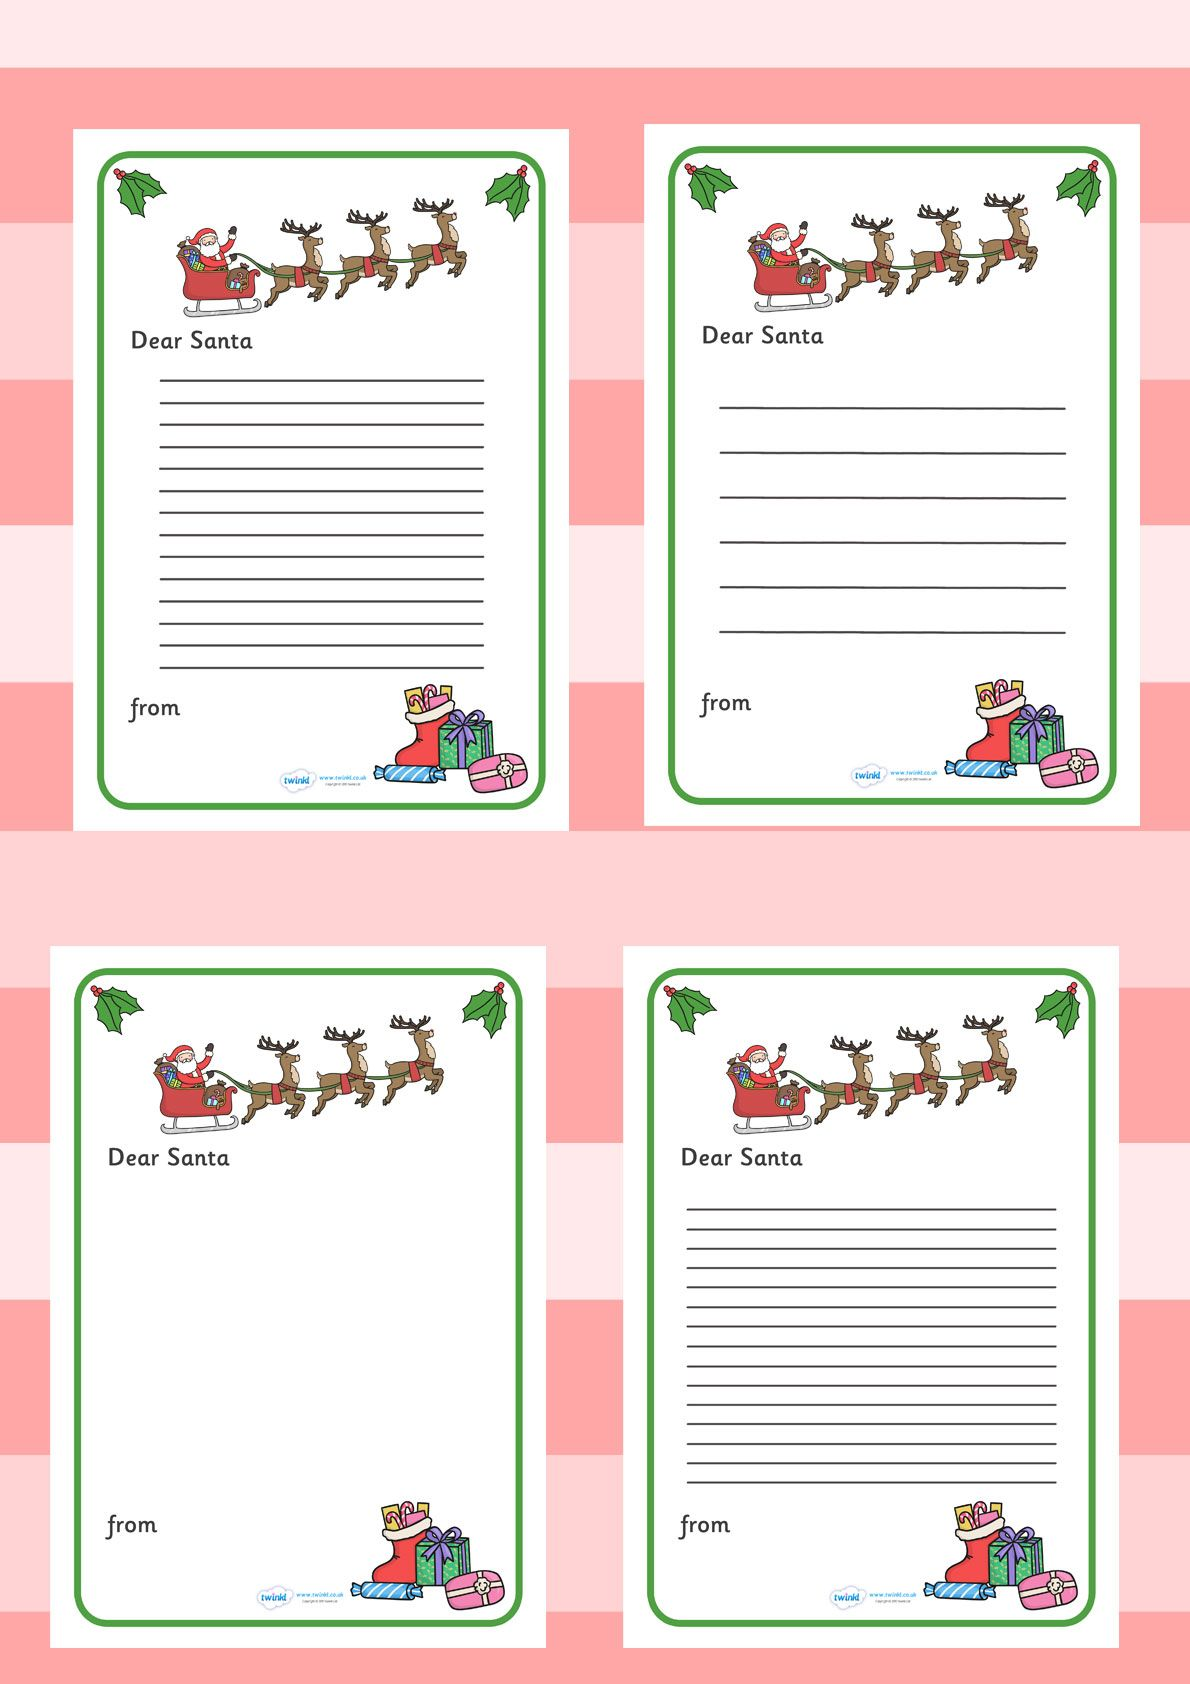 Twinkl Resources Gt Gt Letter To Santa Gt Gt Printable Resources